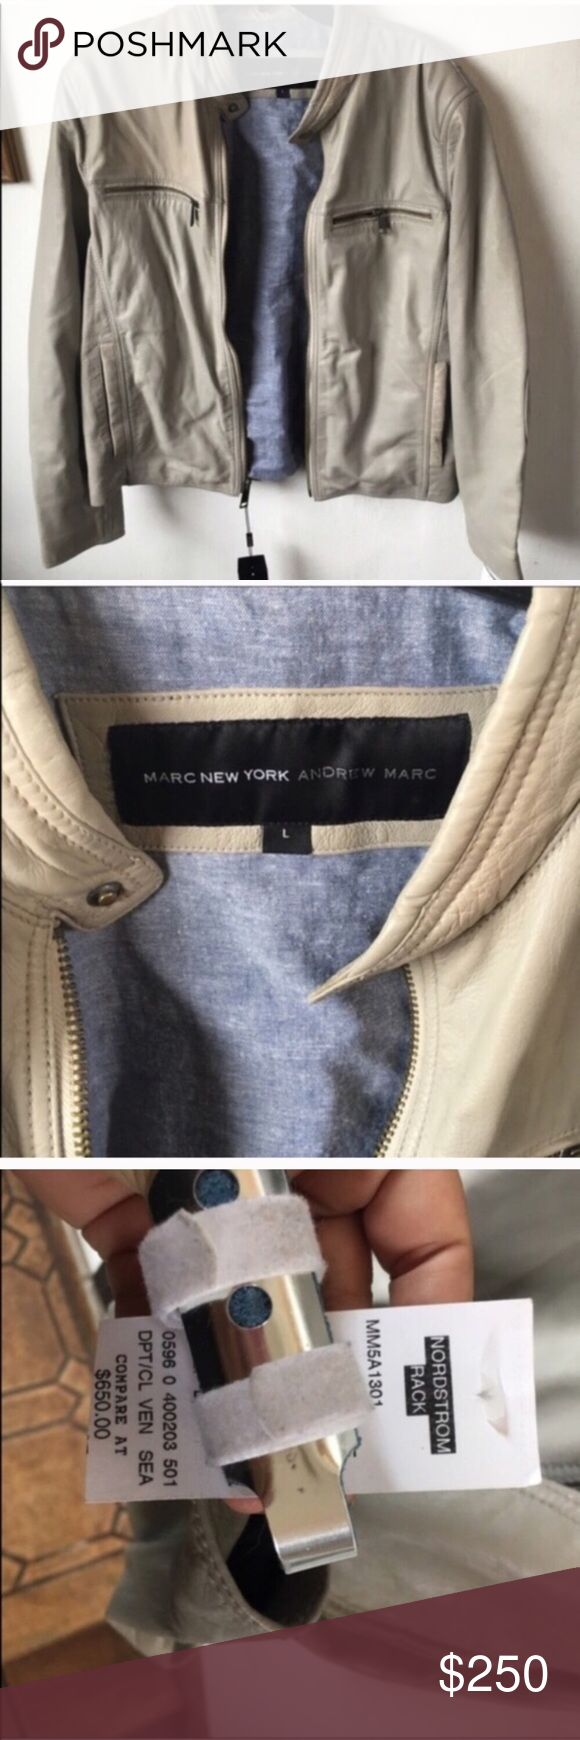 Andrew Marc Leather Bomber Jacket Size Large Andrew Marc Leather Bomber Jacket Size Large, new with tags. Retail $650🌟 in Grey Color 🌟Offers Welcomed Andrew Marc Jackets & Coats